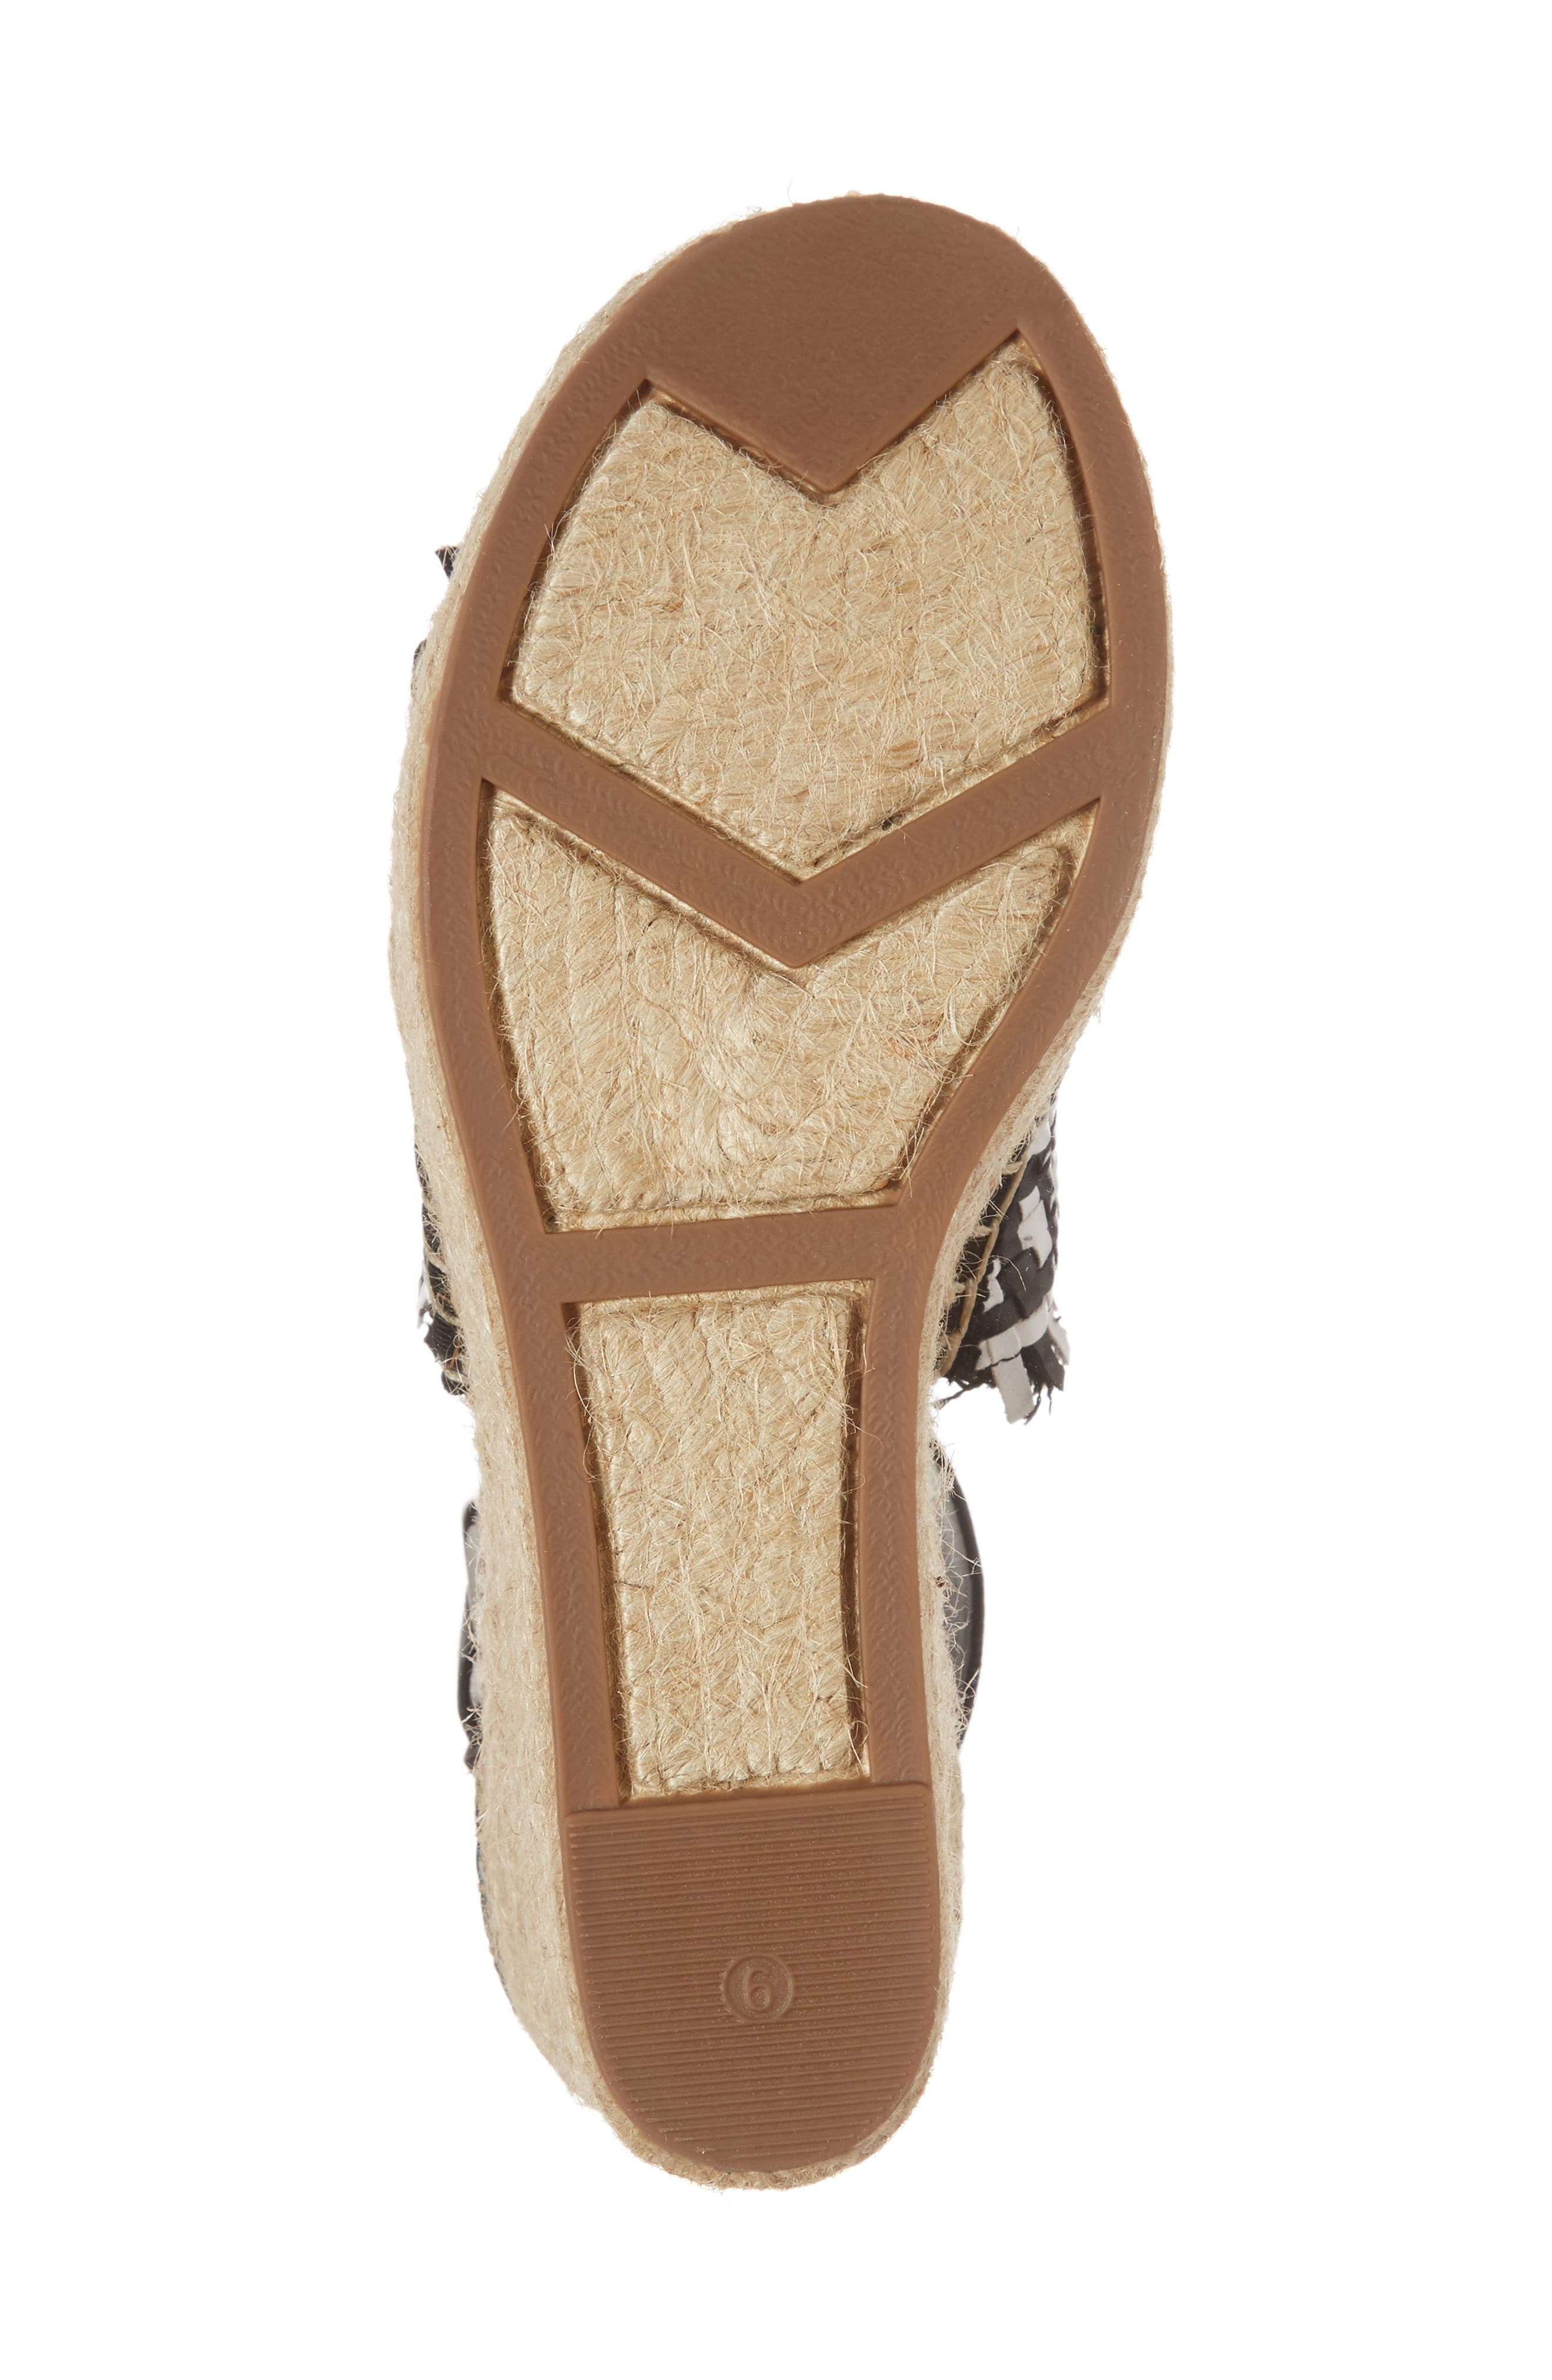 Andrew Espadrille Wedge Sandal,                             Alternate thumbnail 6, color,                             White/ Black Leather